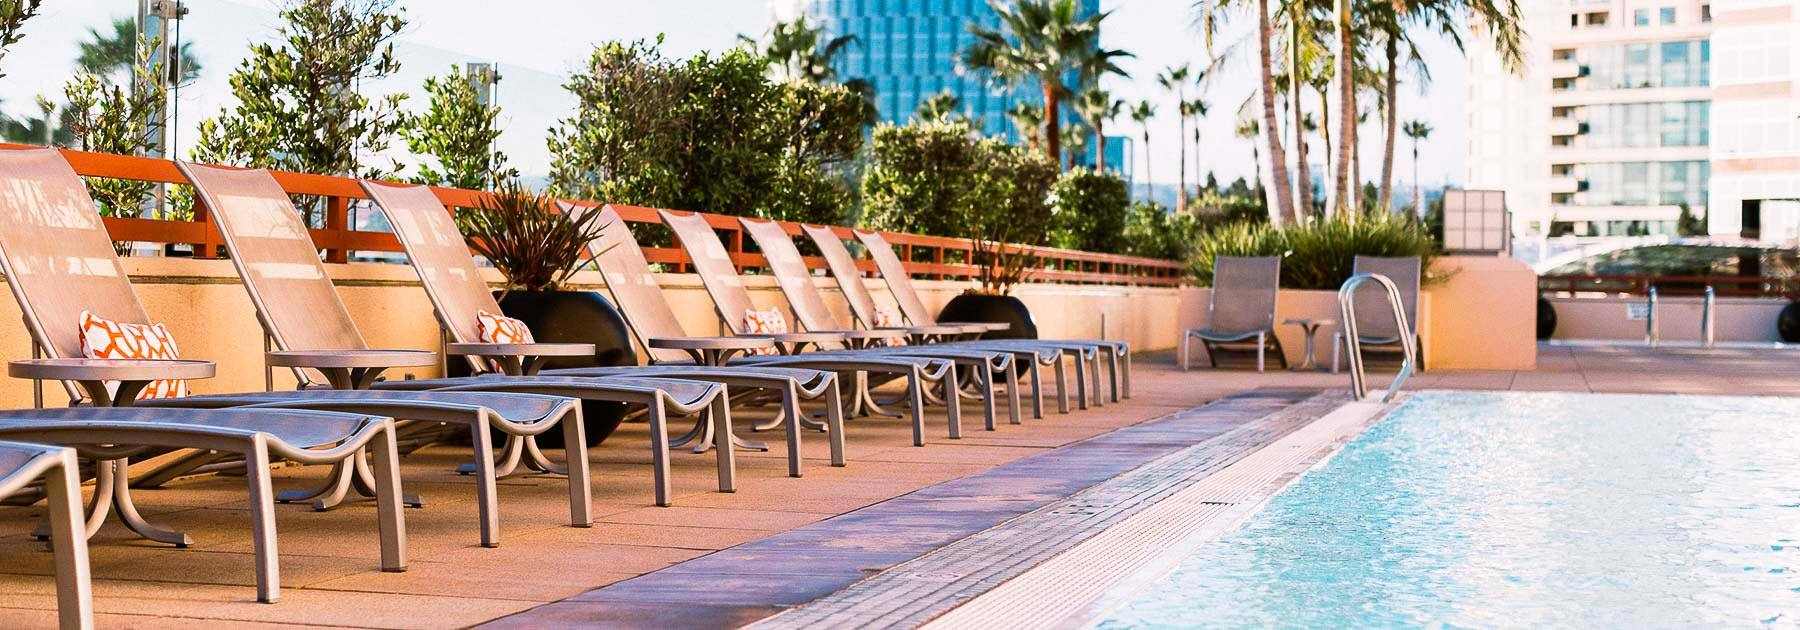 Pool at the InterContinental Los Angeles Century City at Beverly Hills